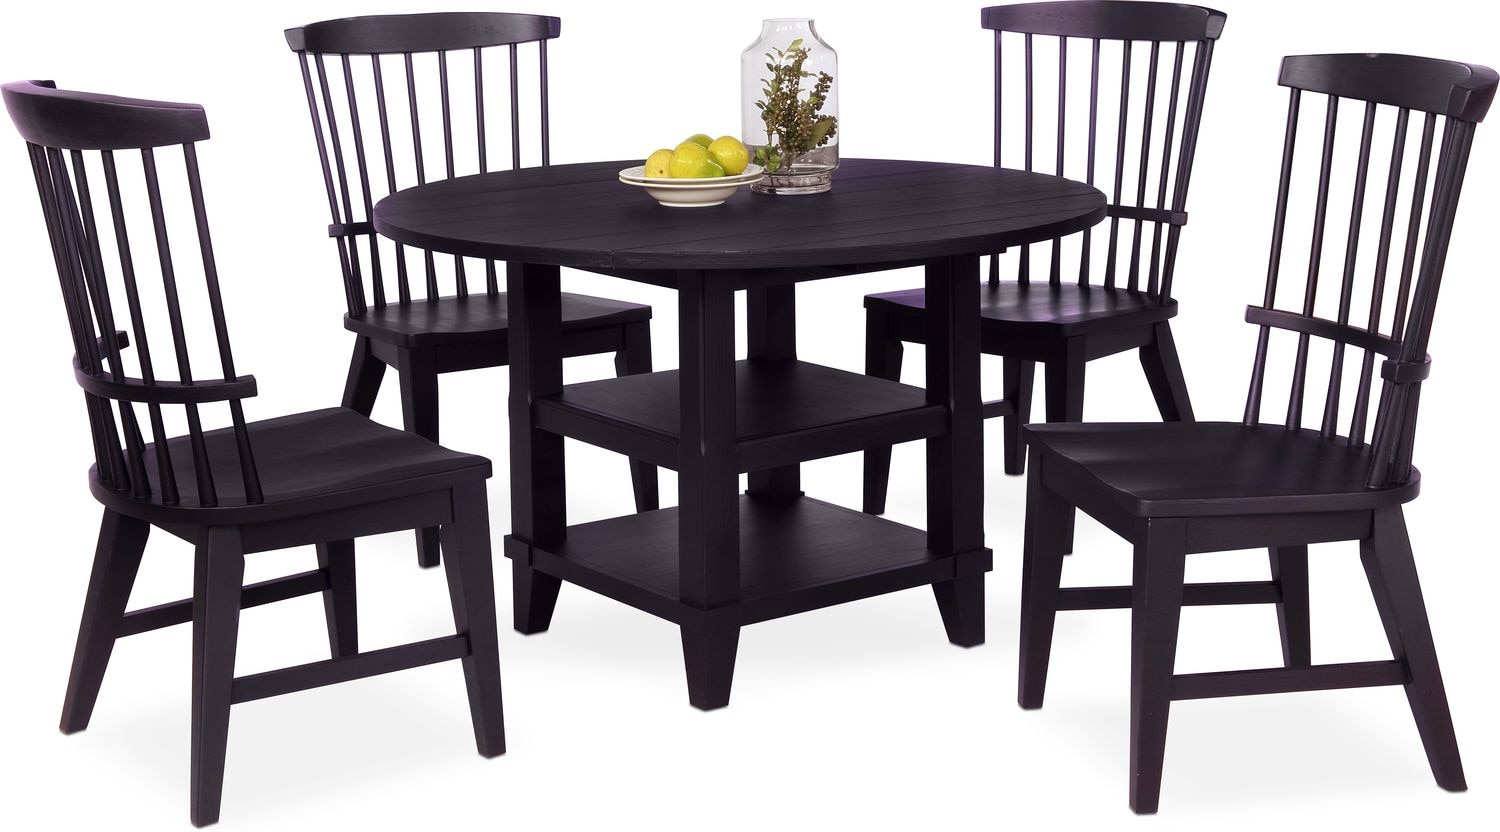 New Haven Round Dining Table And 4 Windsor Side Chairs